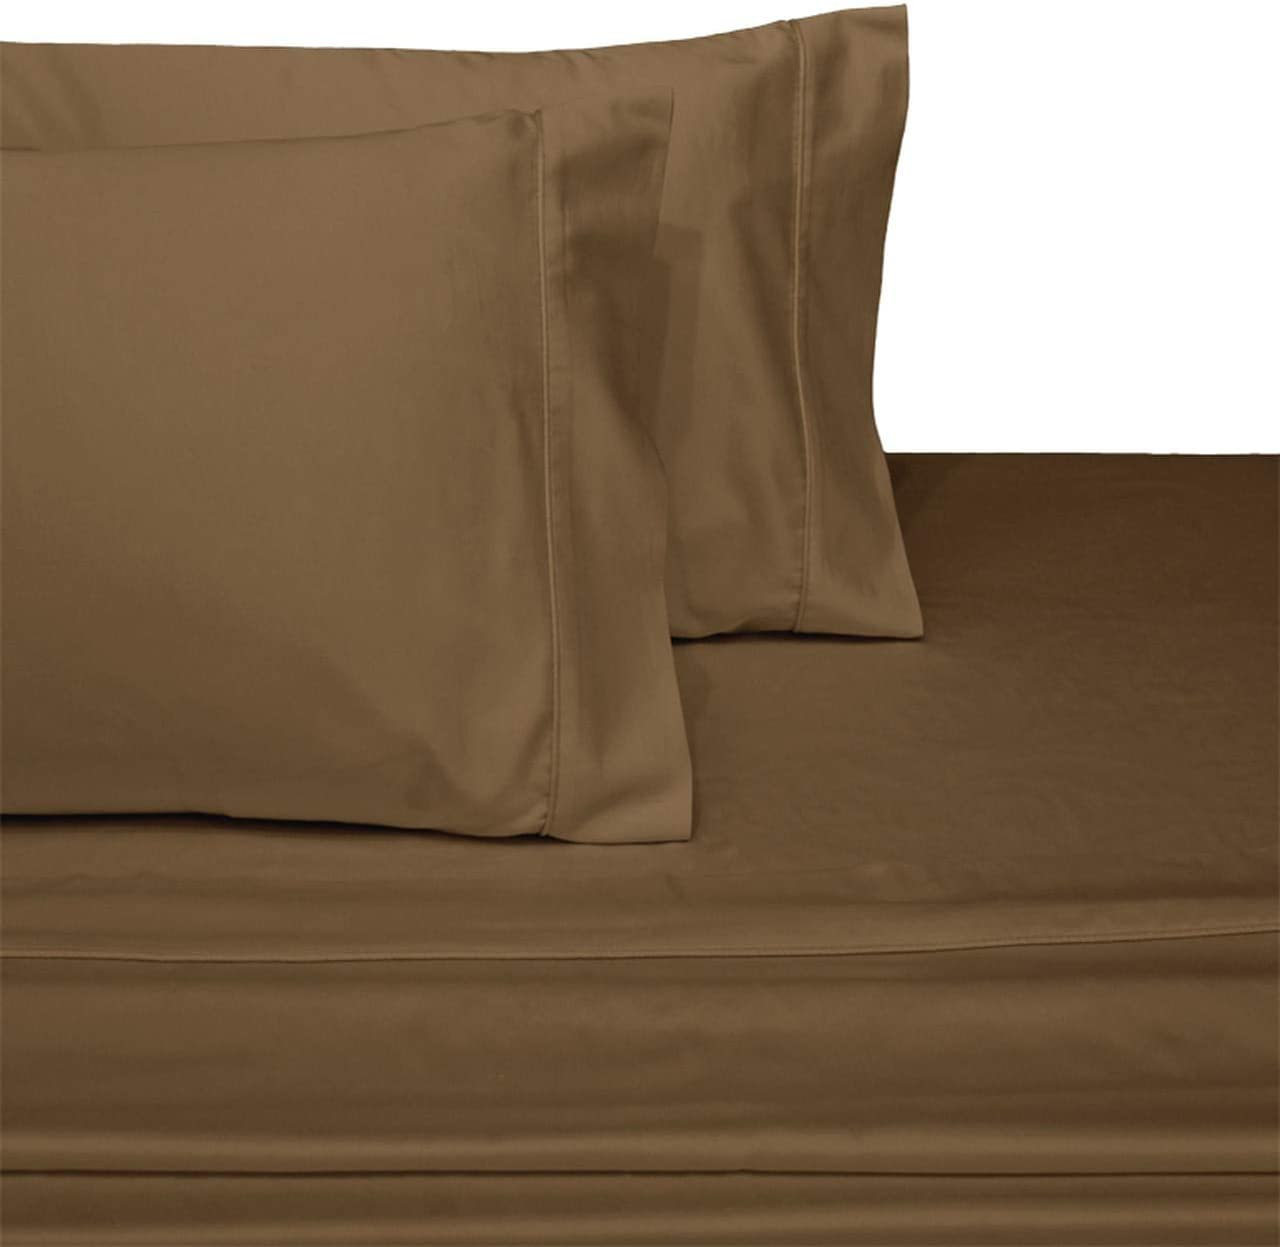 NEW ARRIVAL Abripedic Queen Waterbed Size 100% Taupe Cotton Sheets 人気ブランド多数対象